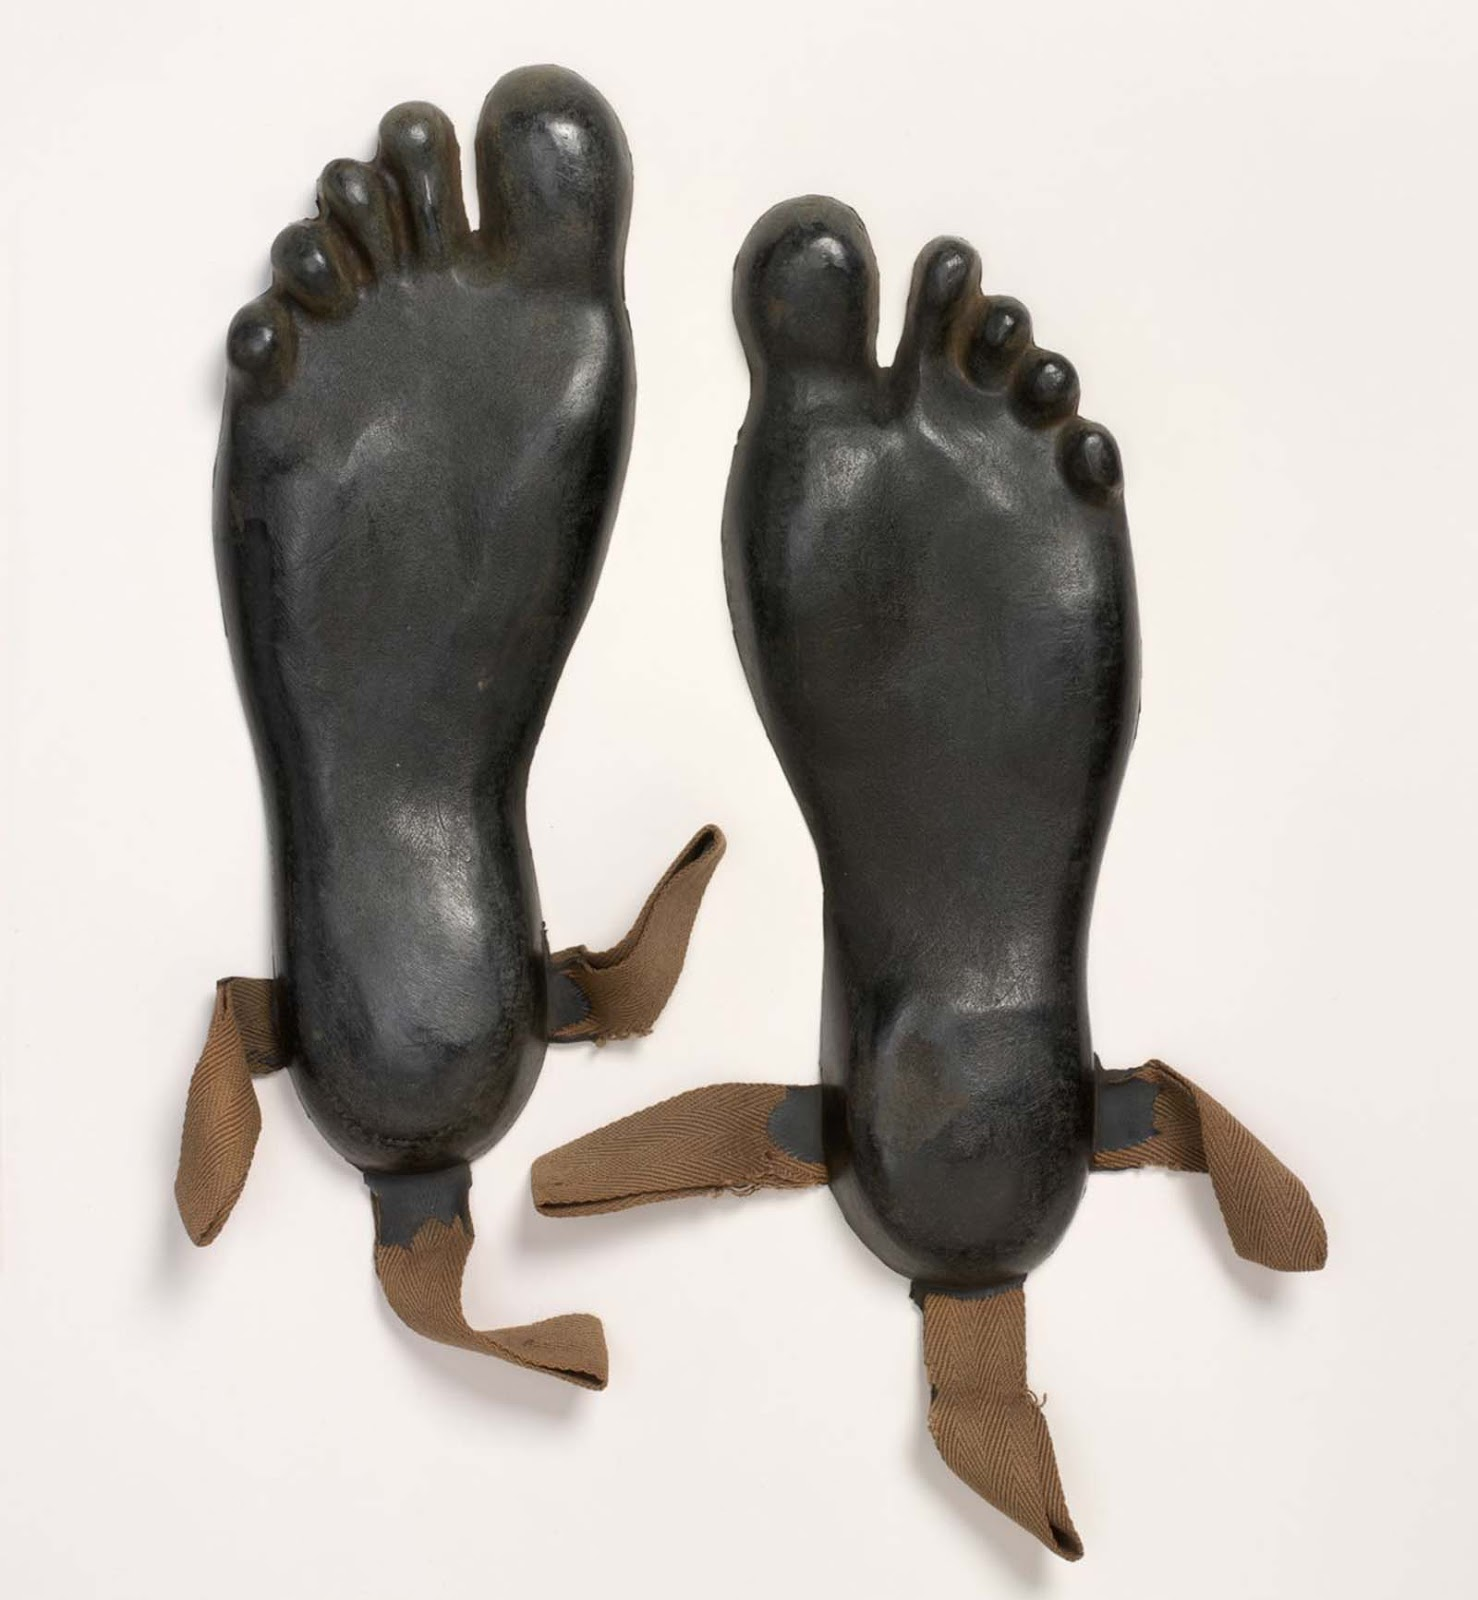 These overshoes were made for Britain's Special Operations Executive (SOE) agents operating in Asia and the Pacific. When the agent landed on a beach from the sea, the